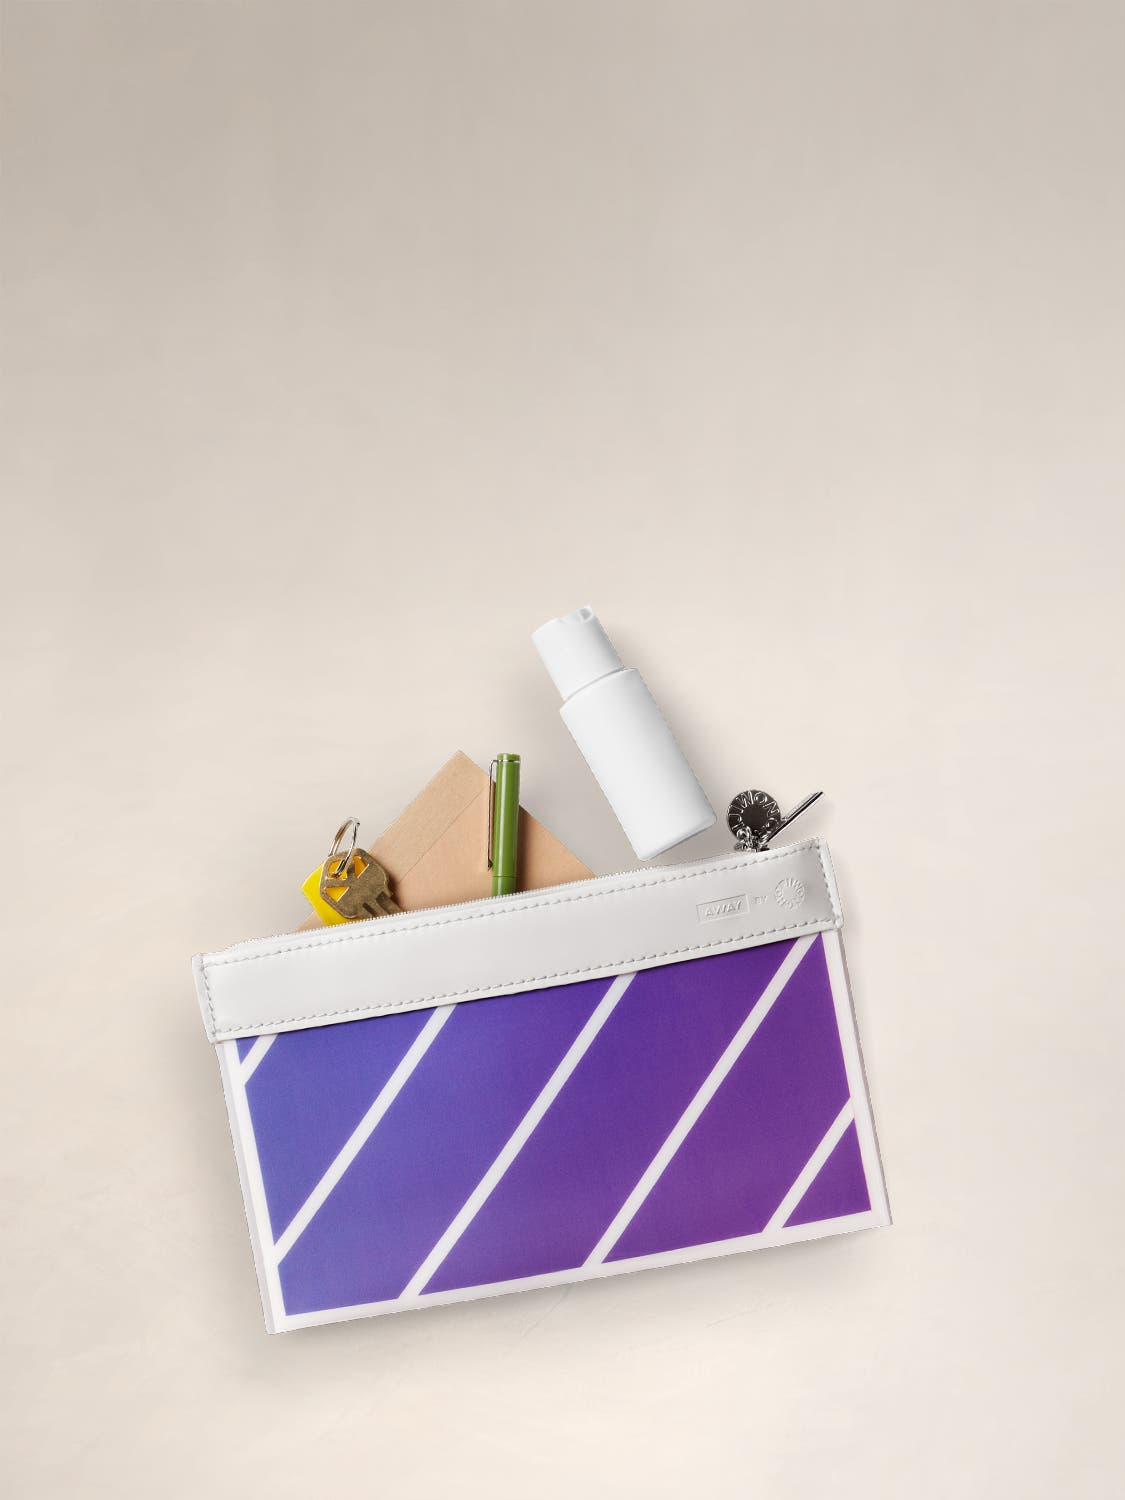 The Travel Pouch Set by Ji Won Choi in a purple stripe pattern, with miscellaneous items packed in